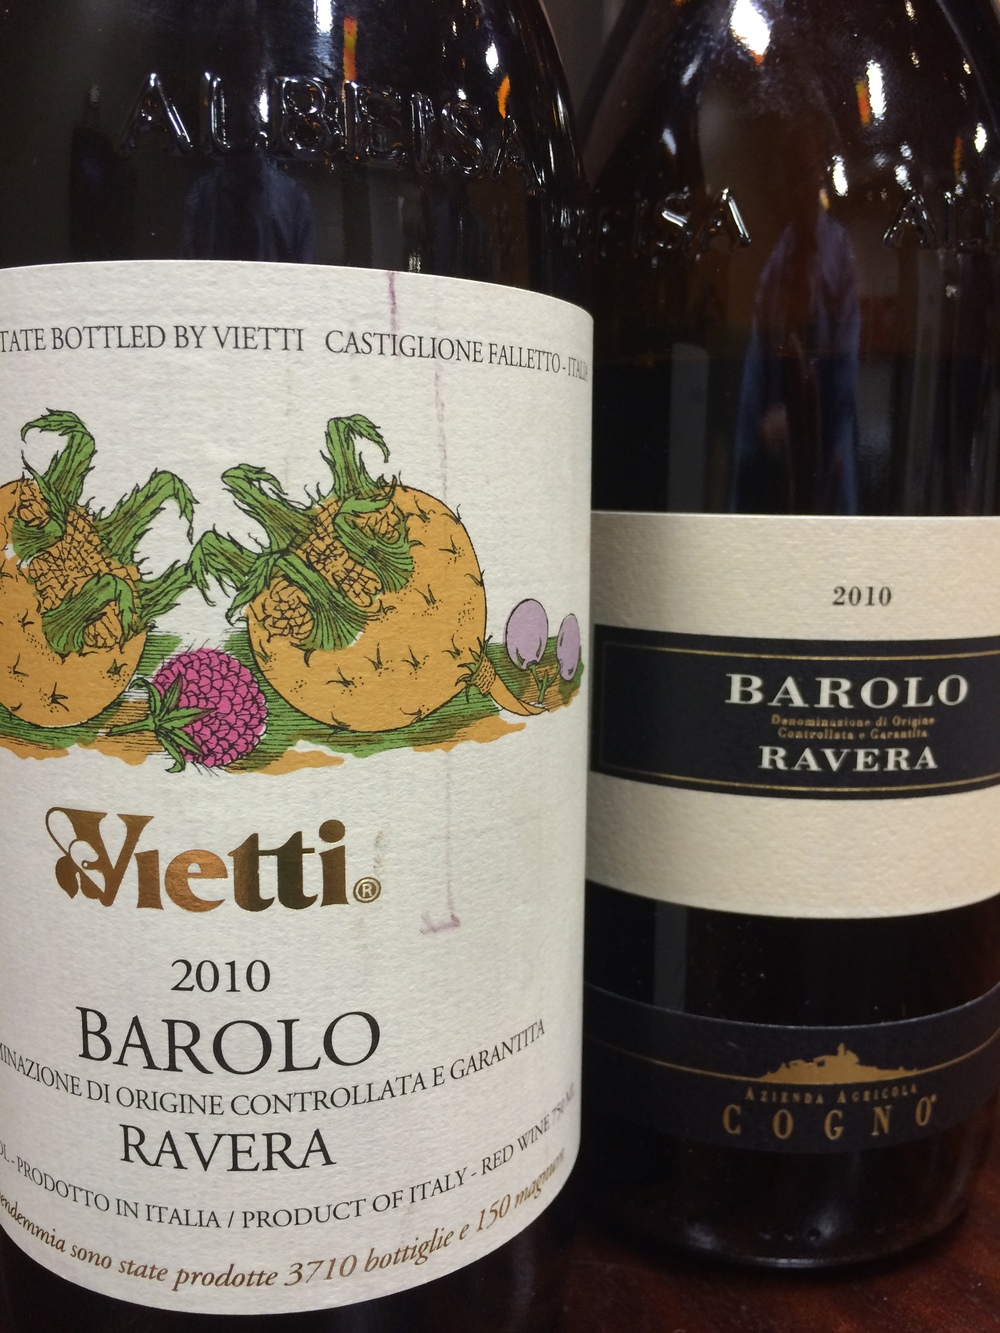 Ravera Barolo from Vietti and Cogno